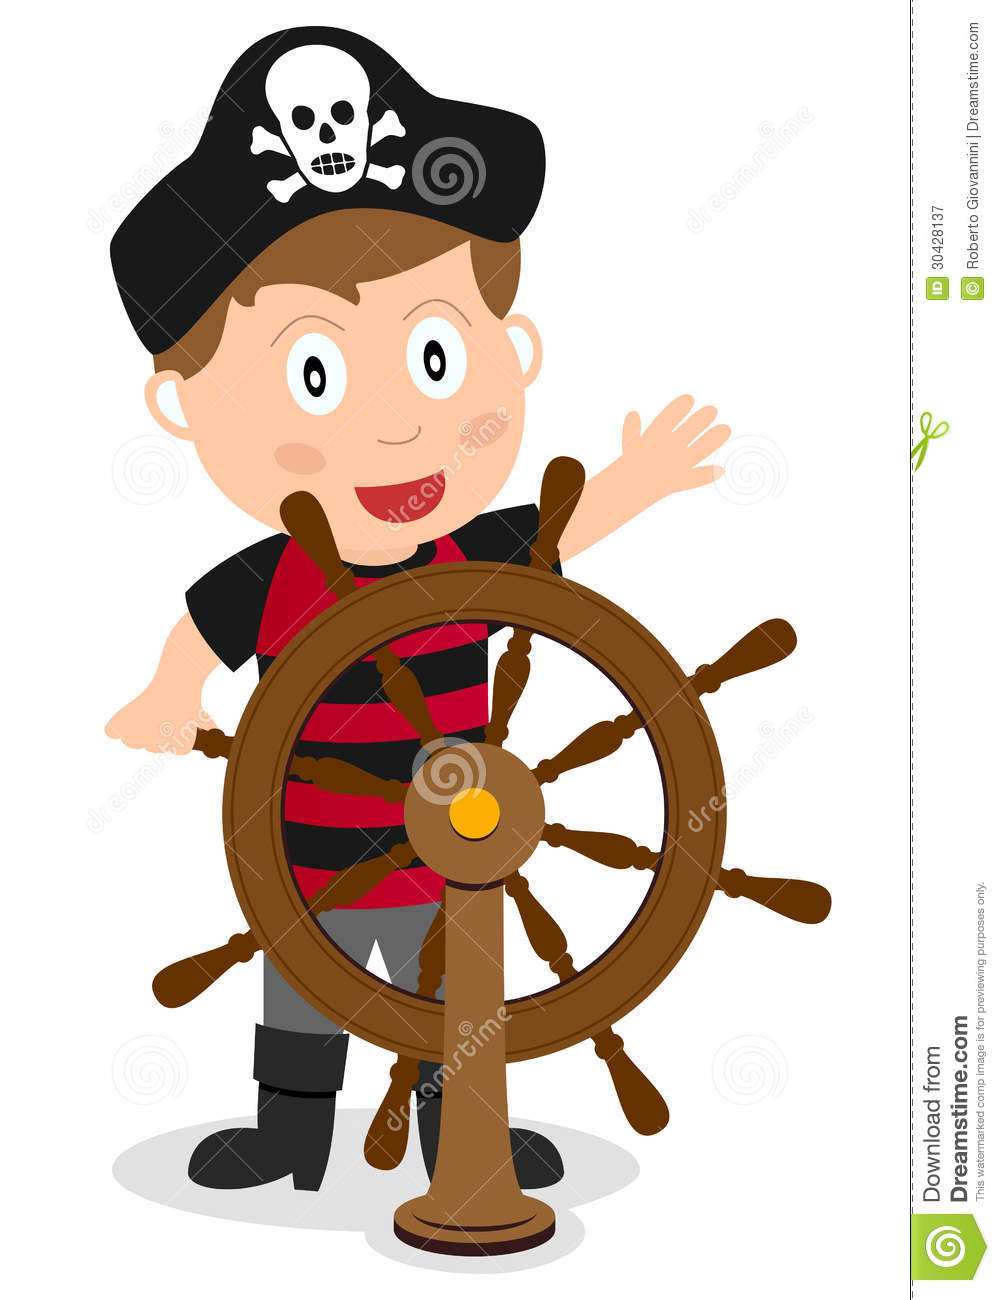 Pirate Captain At The Rudder Royalty Free Stock Photography - Image: 30428137